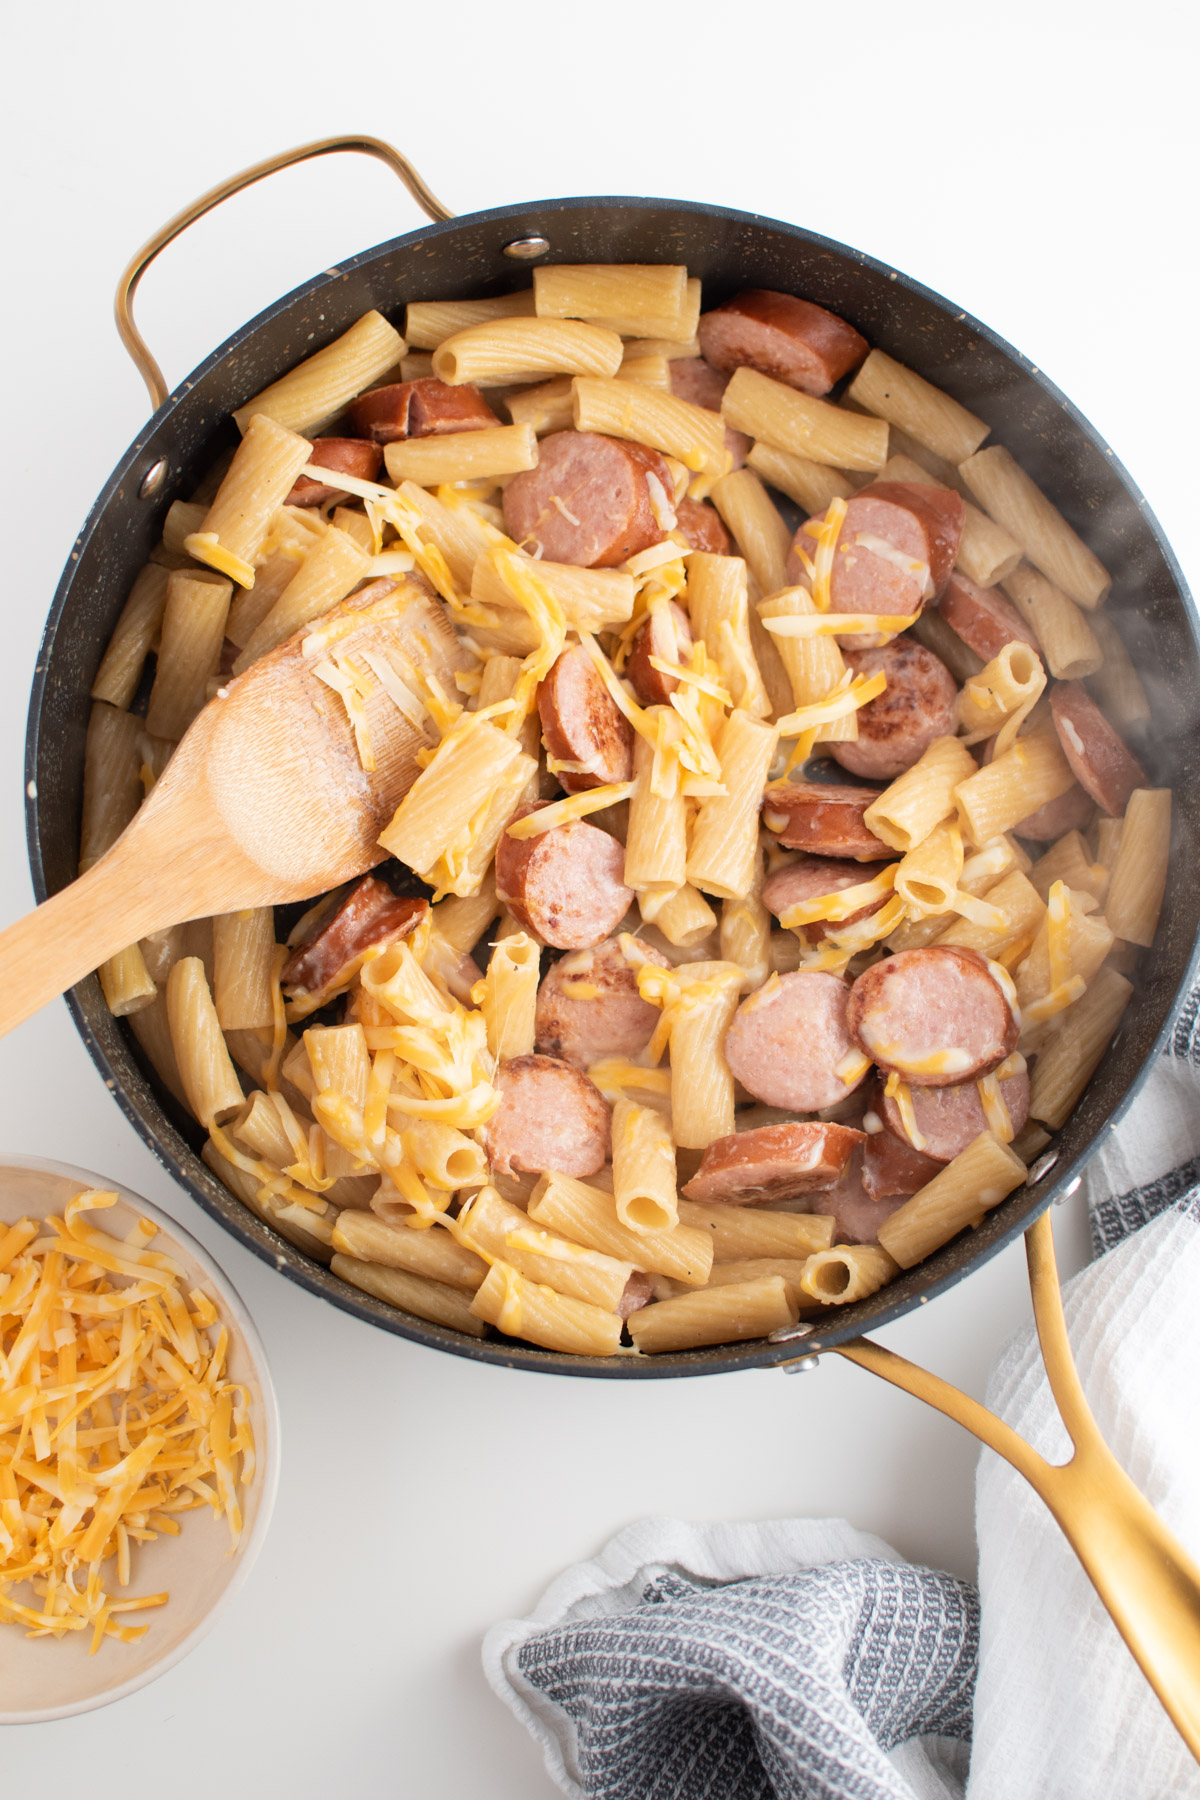 Shredded cheese on top of steamy kielbasa pasta in skillet with wooden spoon.